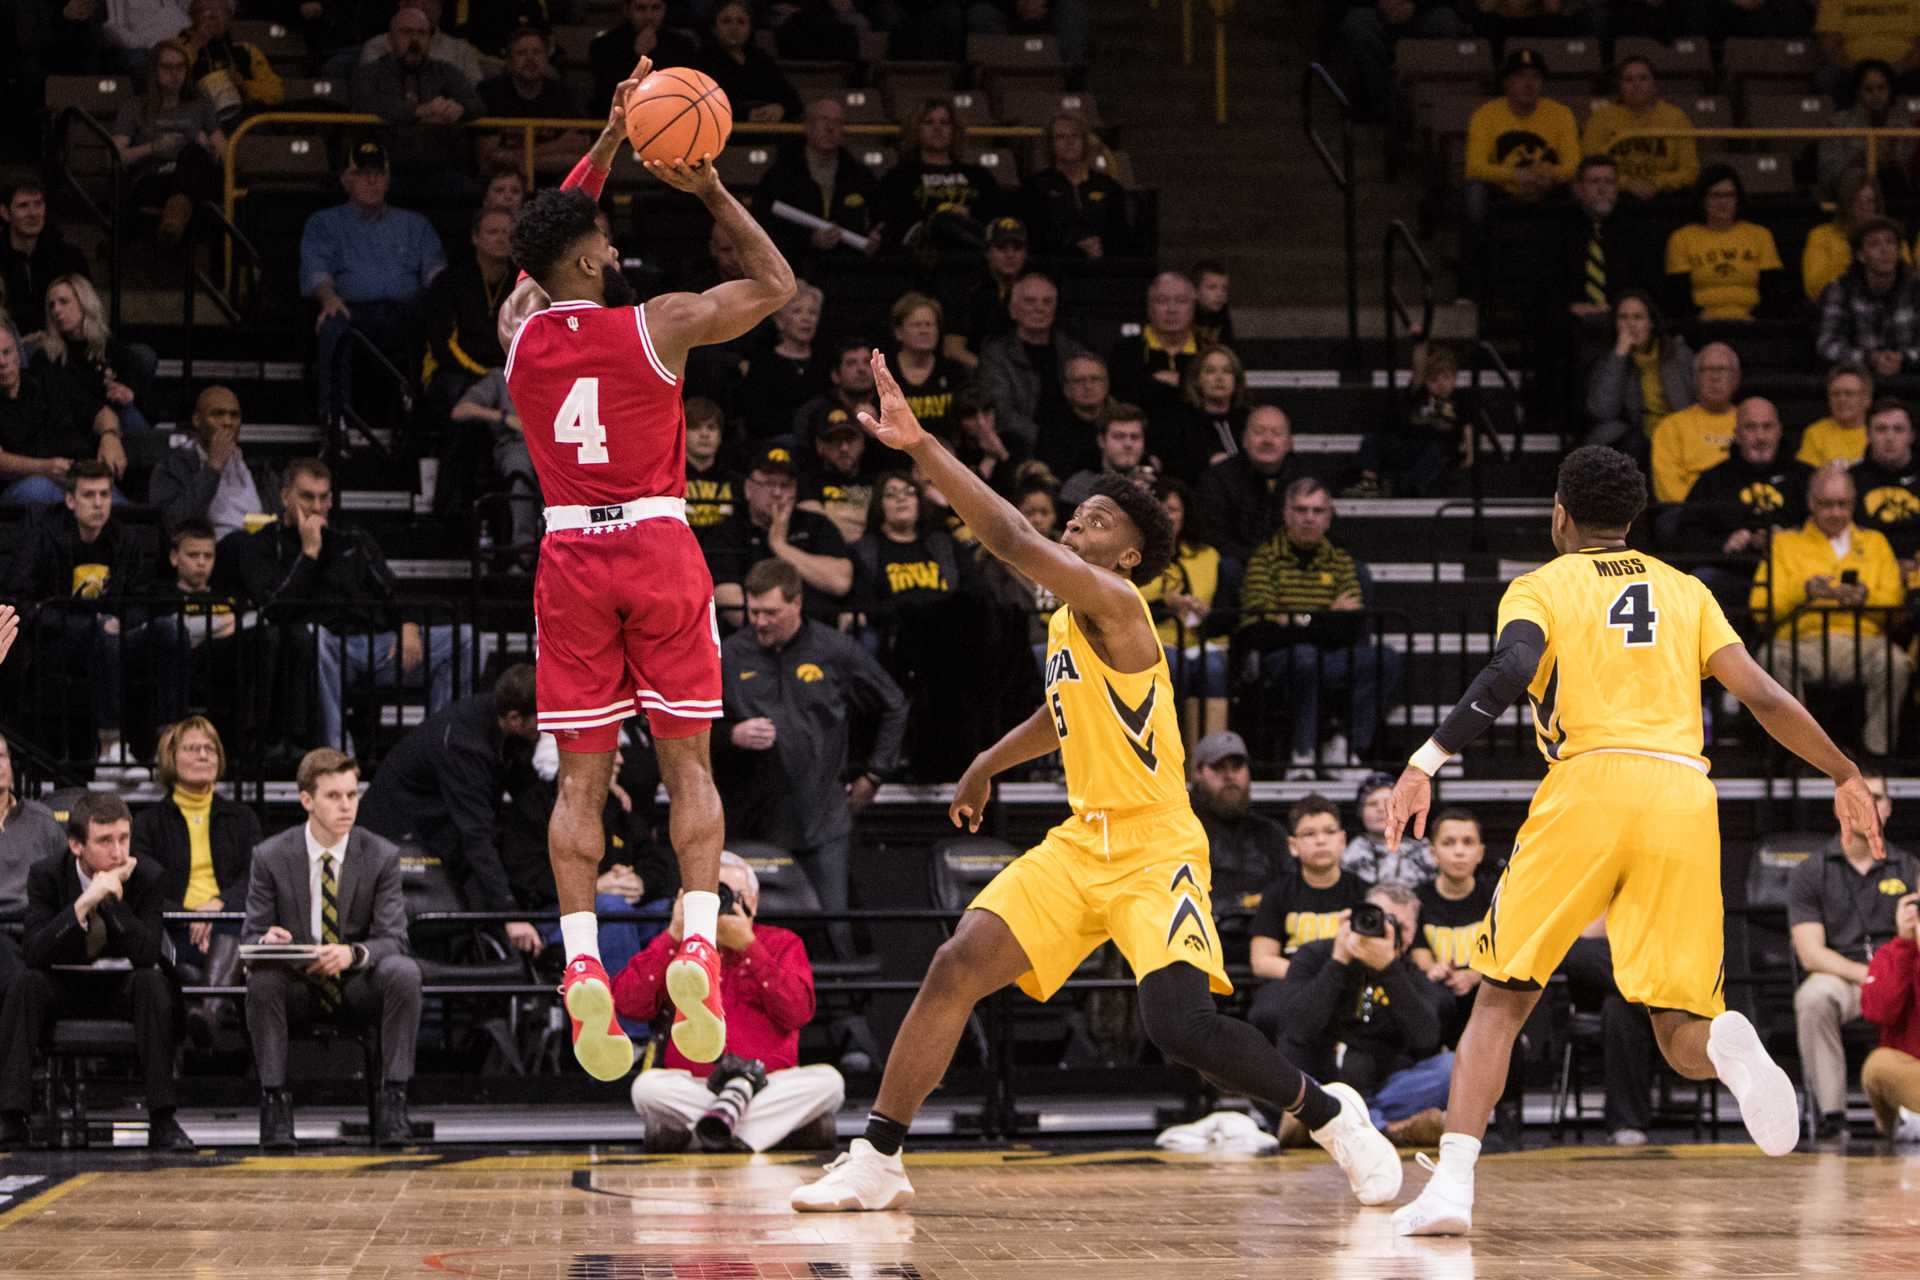 Indiana Guard Robert Johnson launches a jump shot against the University of Iowa at Carver-Hawkeye Arena on Saturday, Feb. 17, 2018. The Hoosiers defeated the Hawkeyes 84 to 82. (David Harmantas/The Daily Iowan)